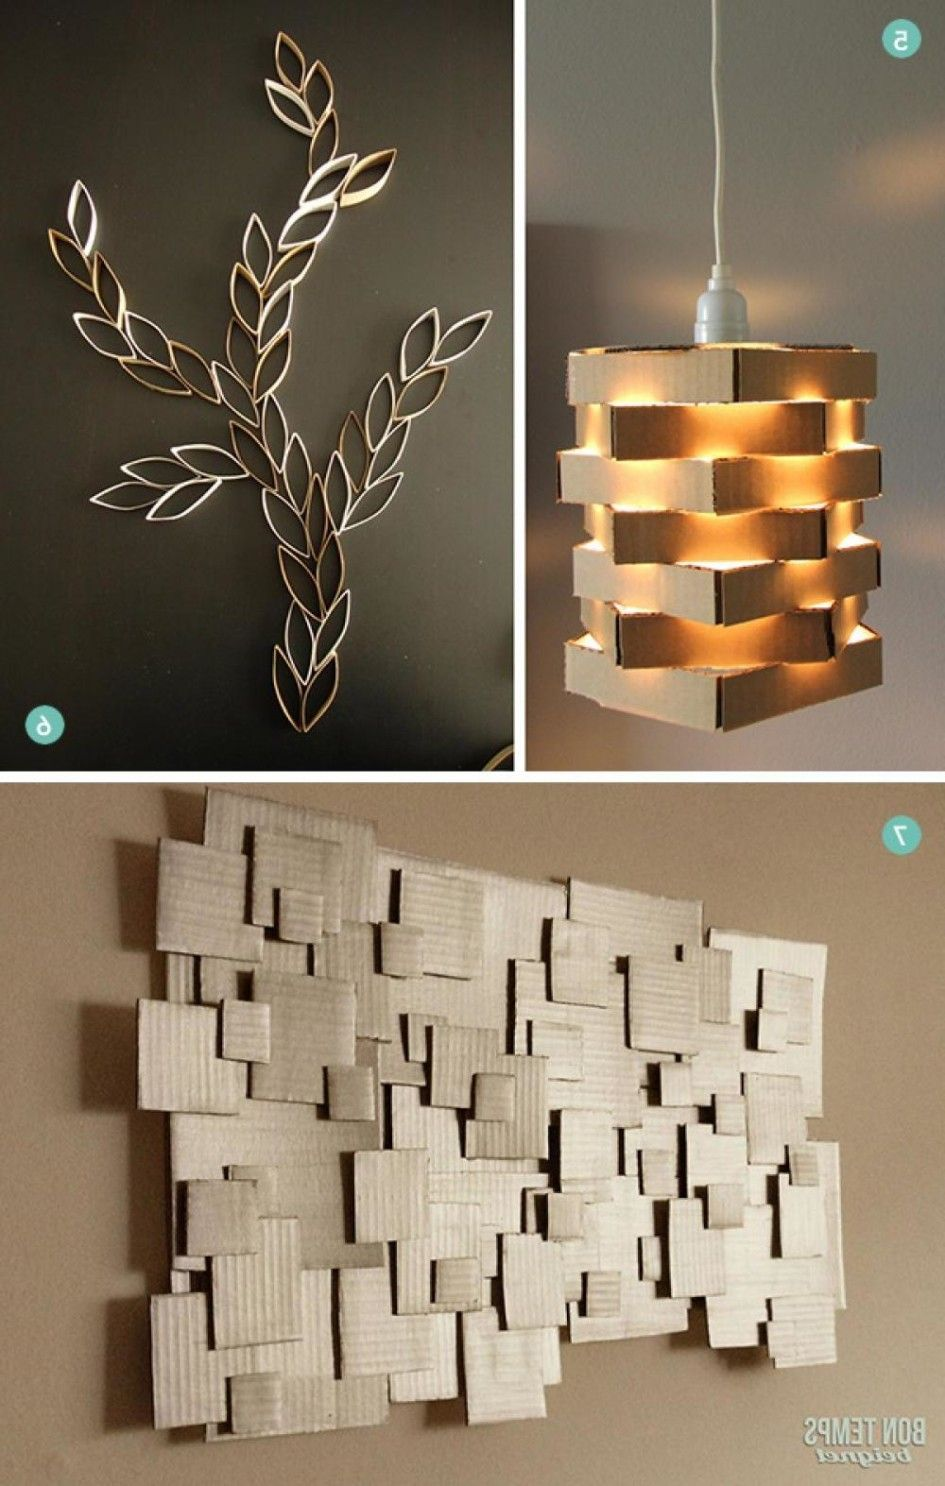 Amazing Modern Wall Decoration Design Ideas To Beautify Space DIY Cardboard Pendant Light